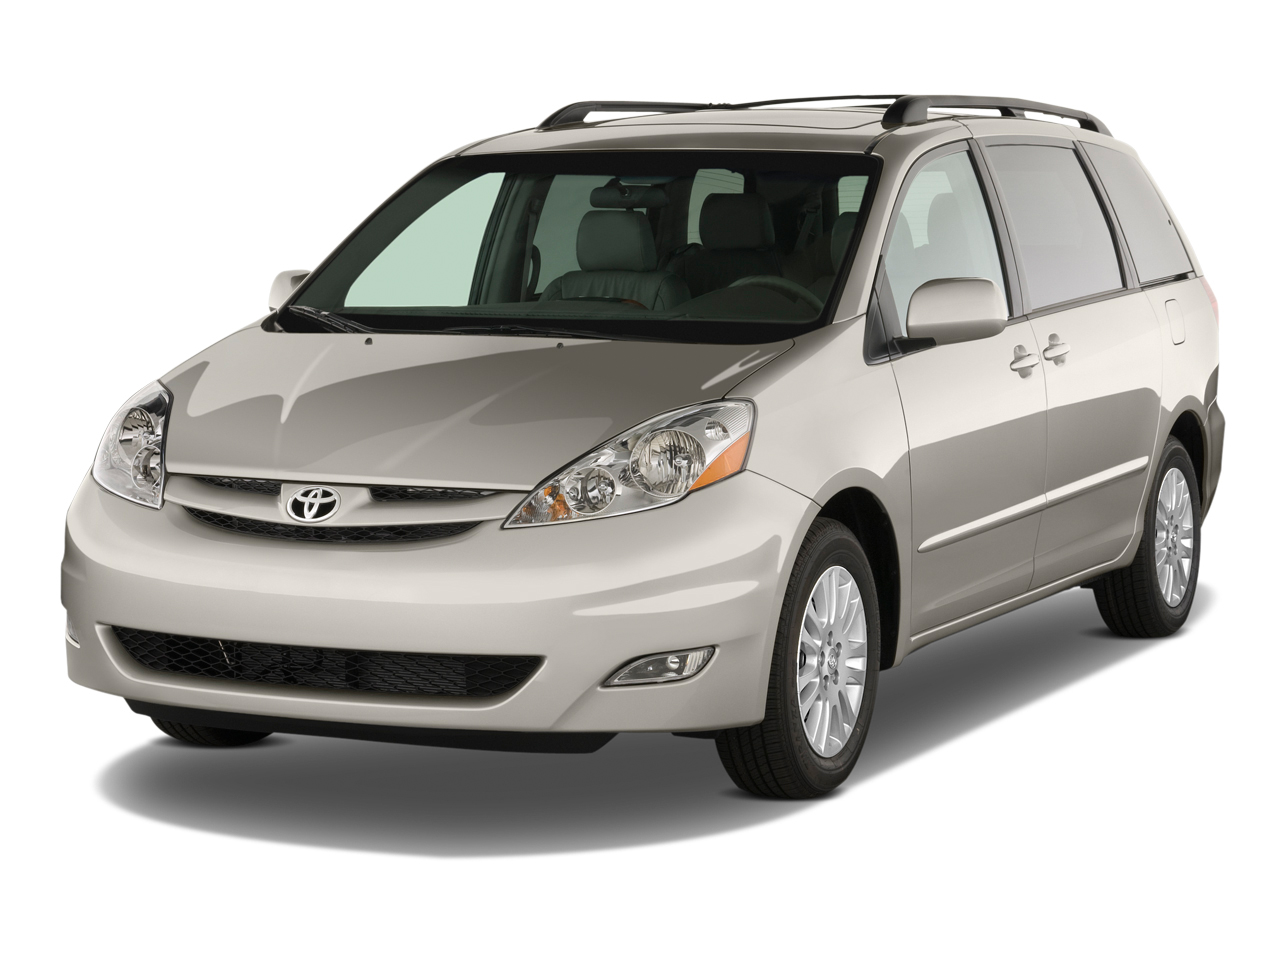 2010 toyota sienna review ratings specs prices and photos the car connection. Black Bedroom Furniture Sets. Home Design Ideas